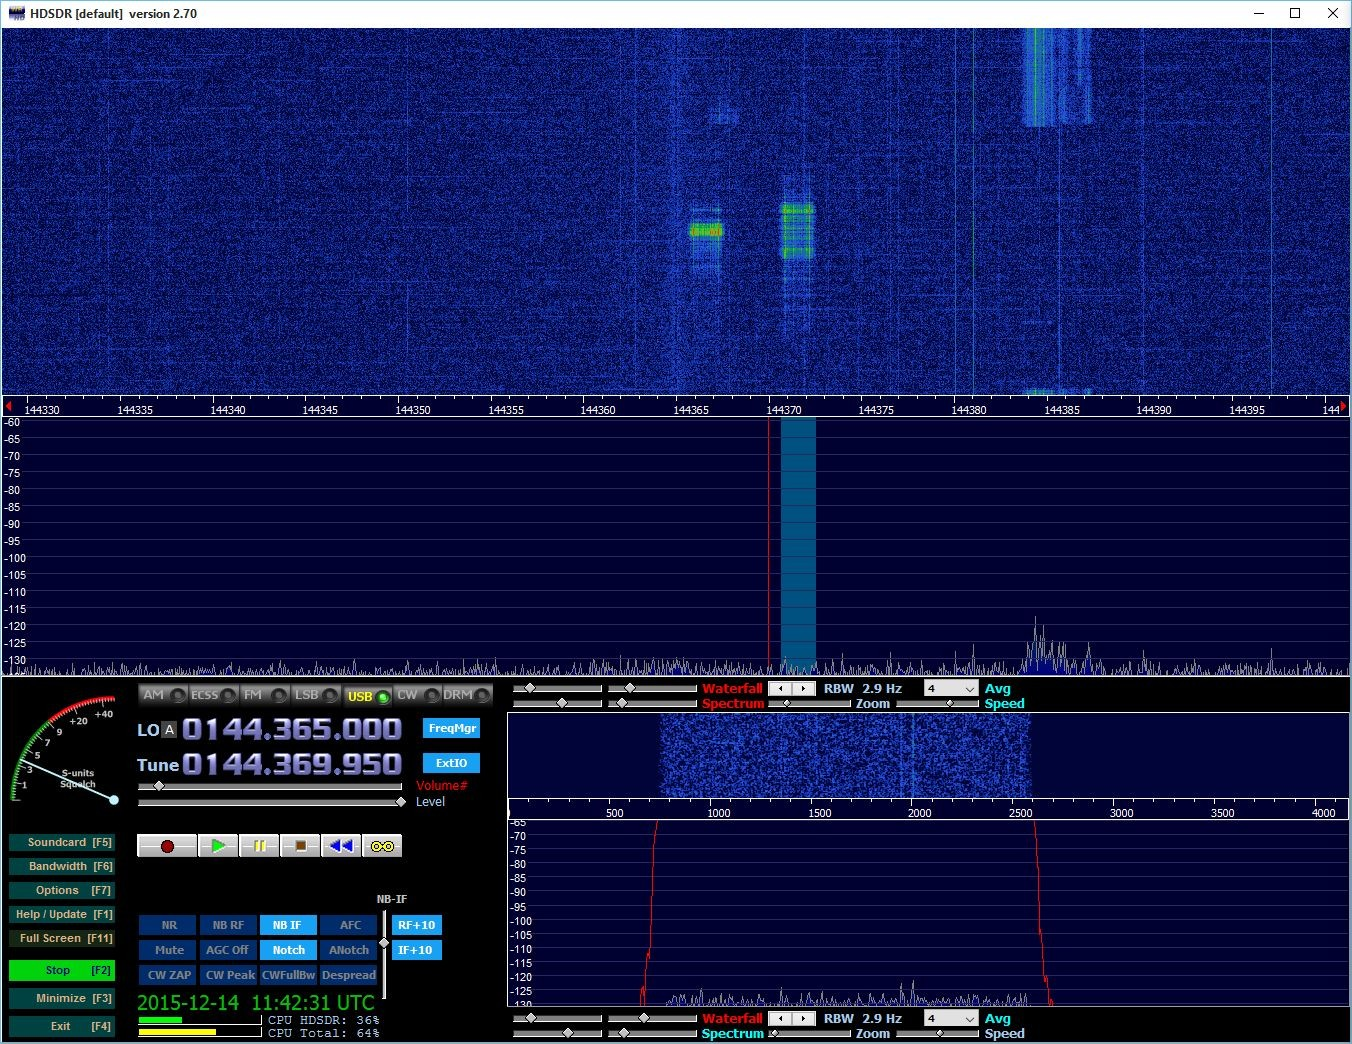 10 sec burst from SM6CEN calling CQ on 144.370